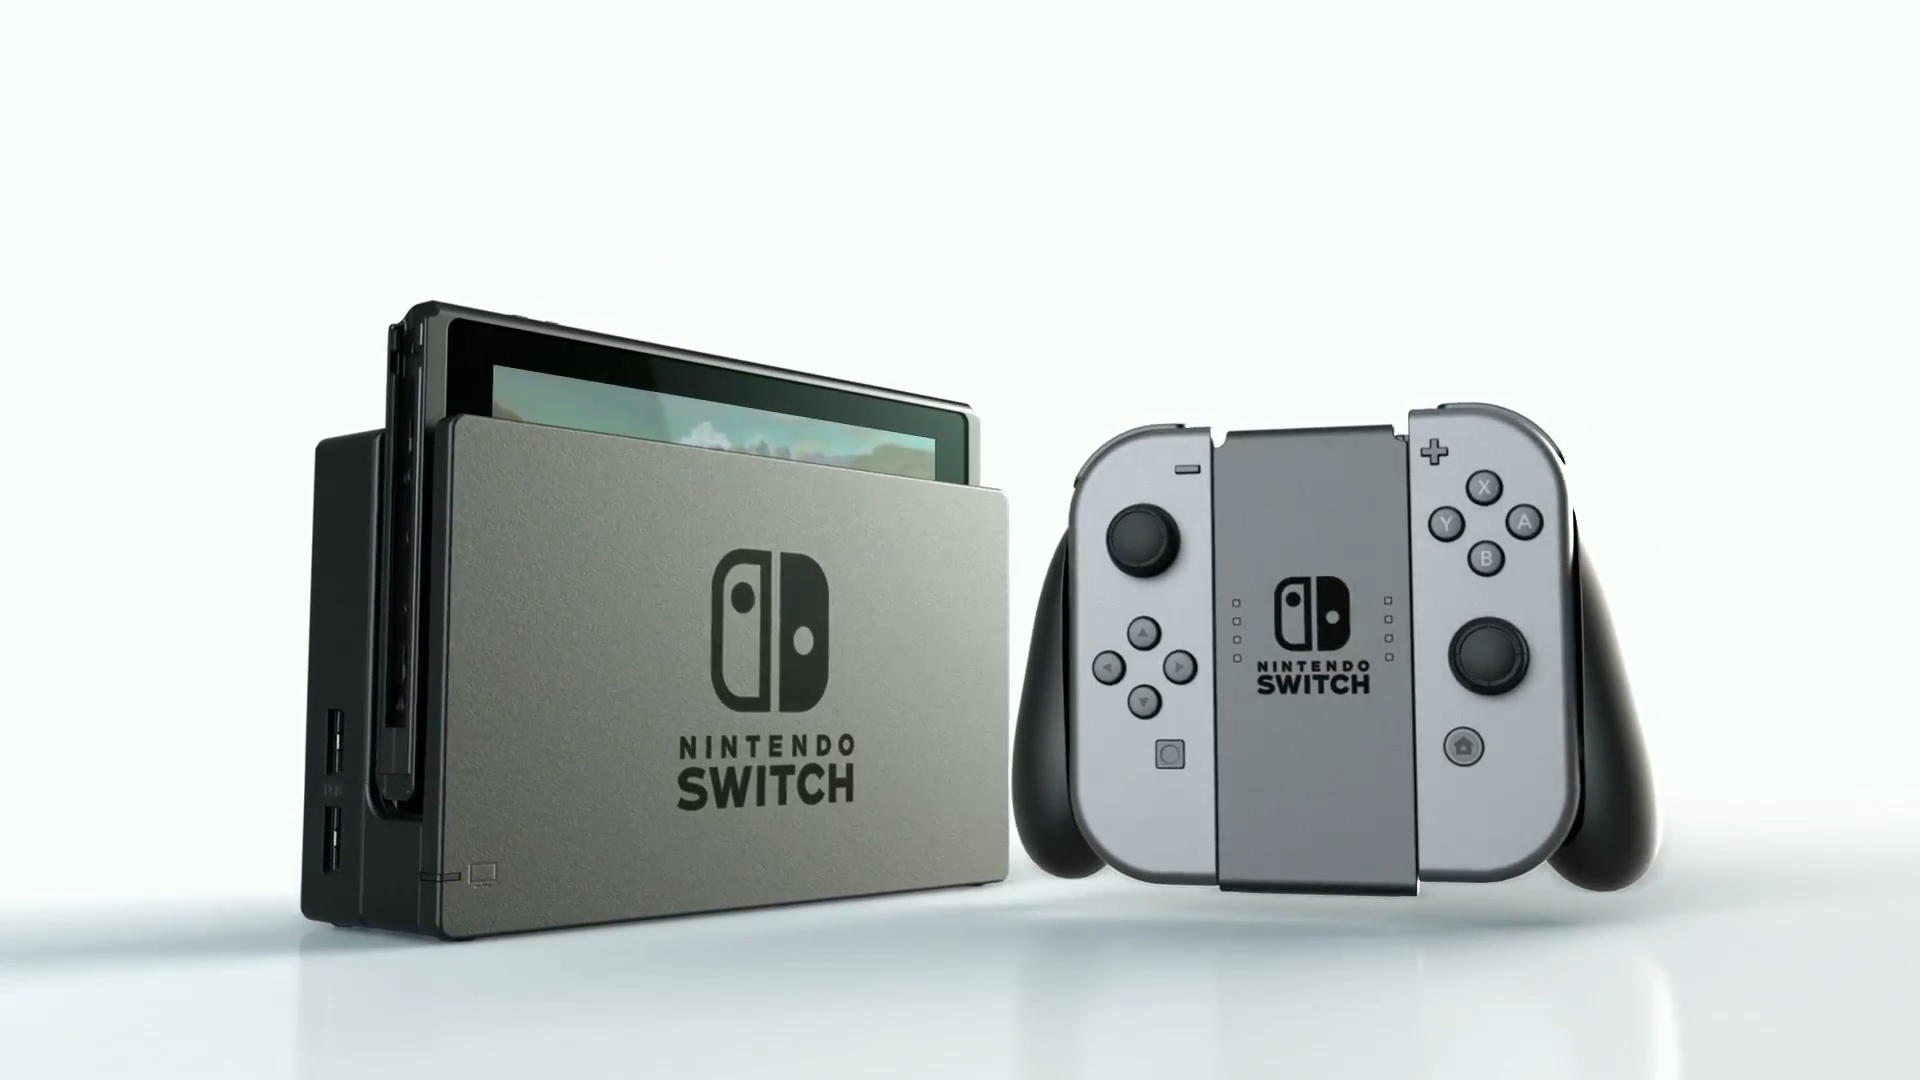 nintendo switch black computer wallpaper 916